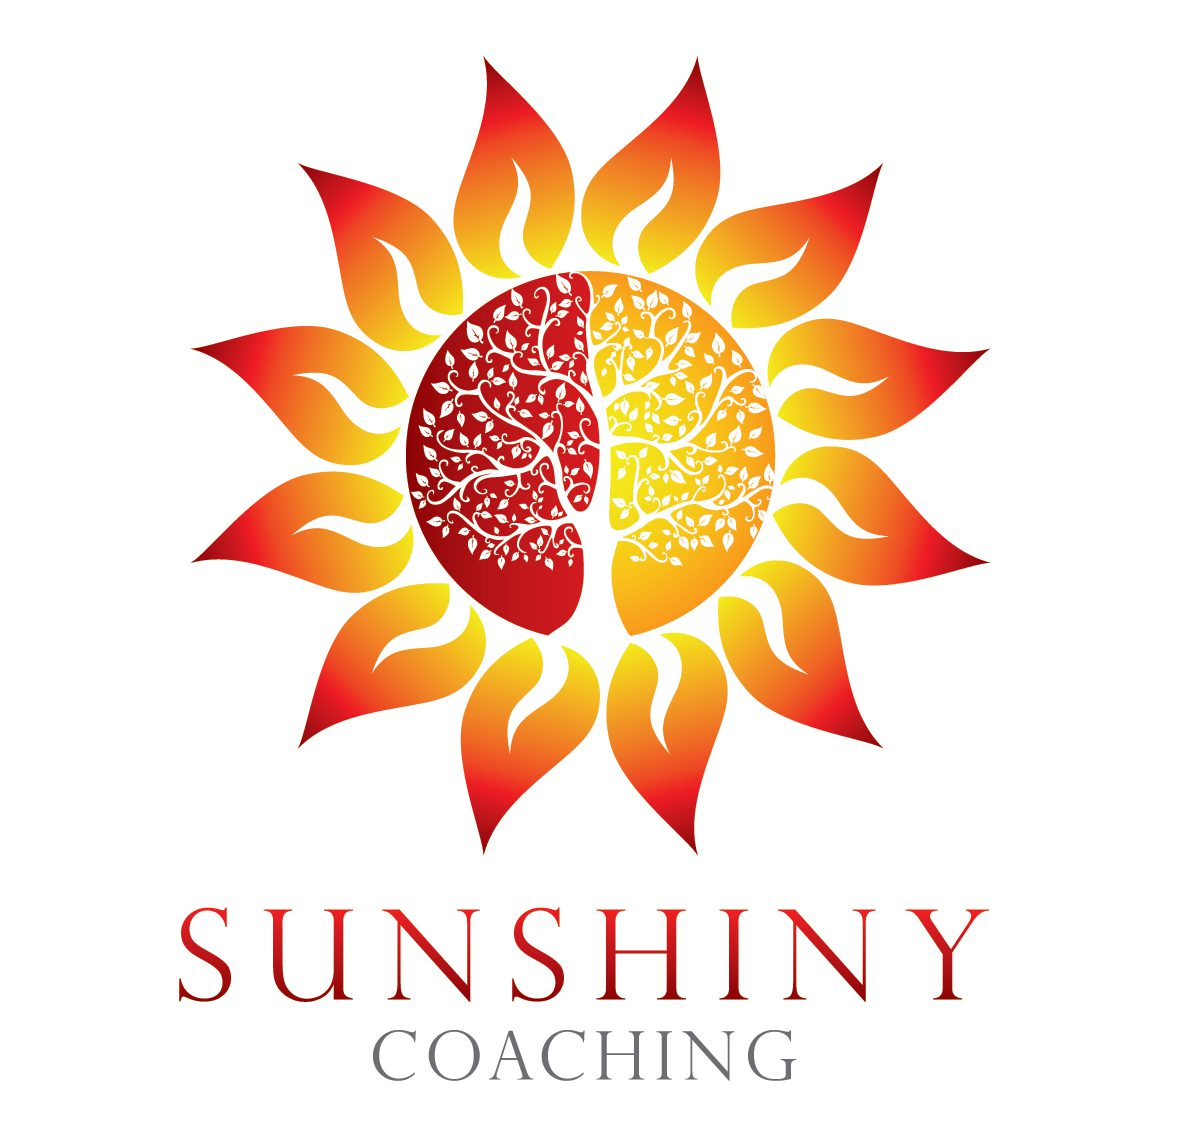 Sunshiny Coaching logo